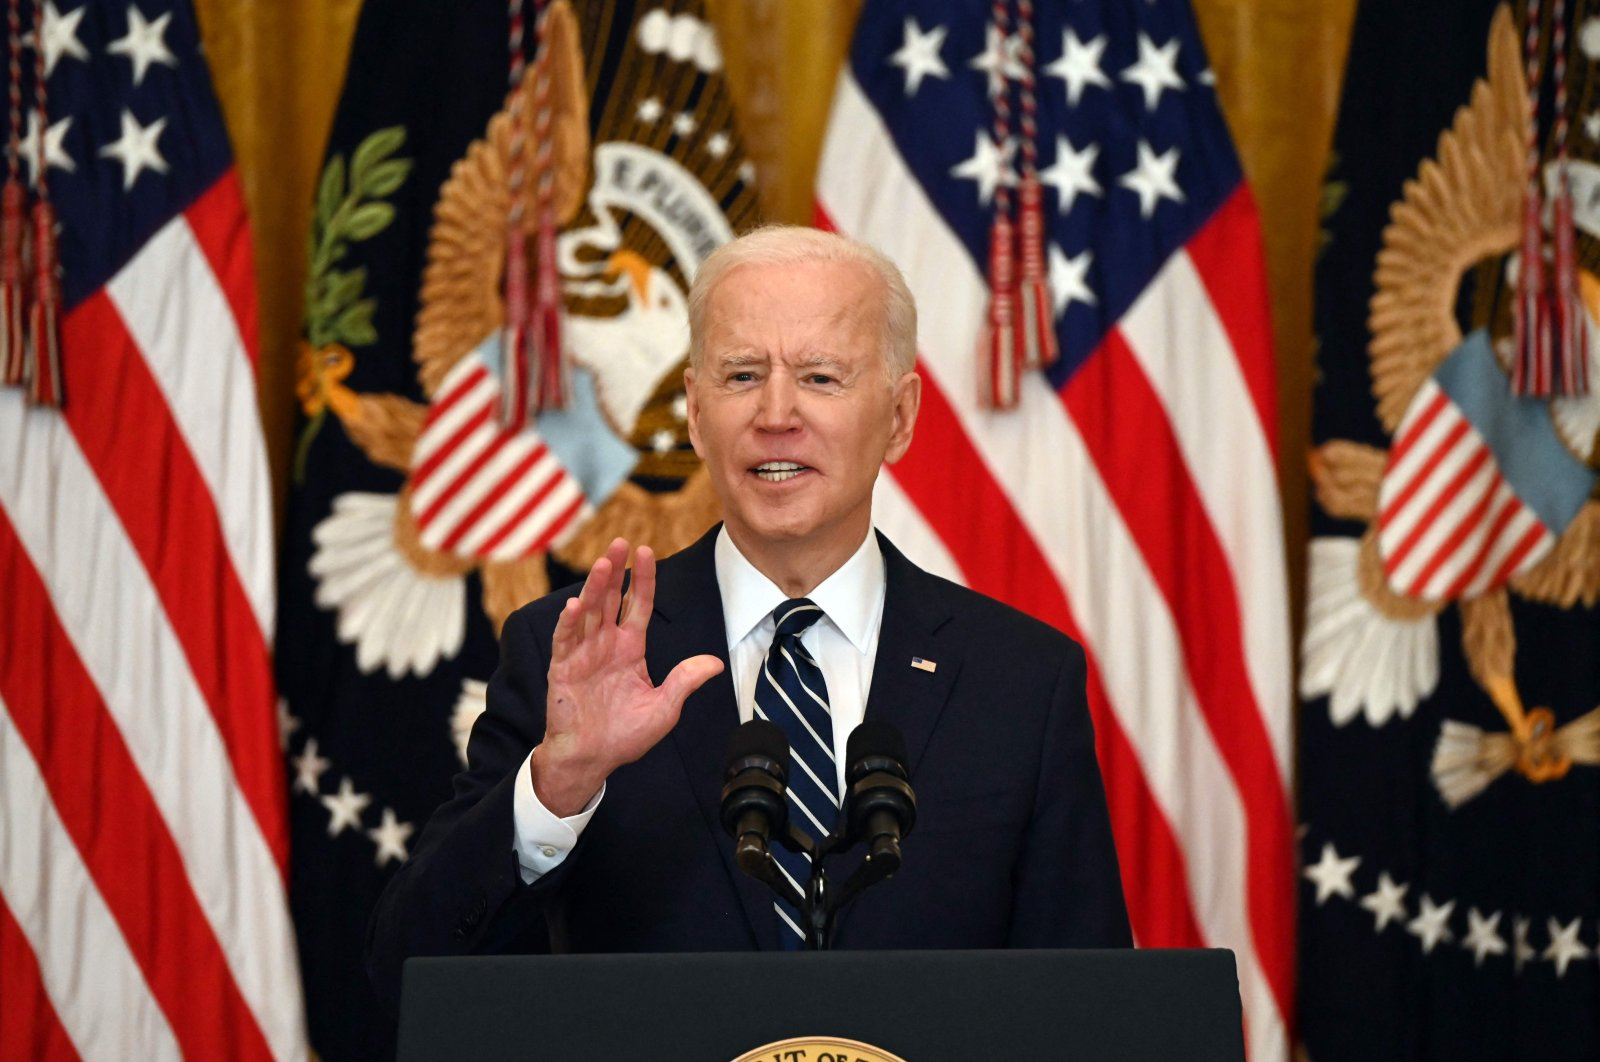 U.S. President Joe Biden answers a question during his first press briefing in the East Room of the White House, Washington, D.C., U.S., March 25, 2021. (AFP)